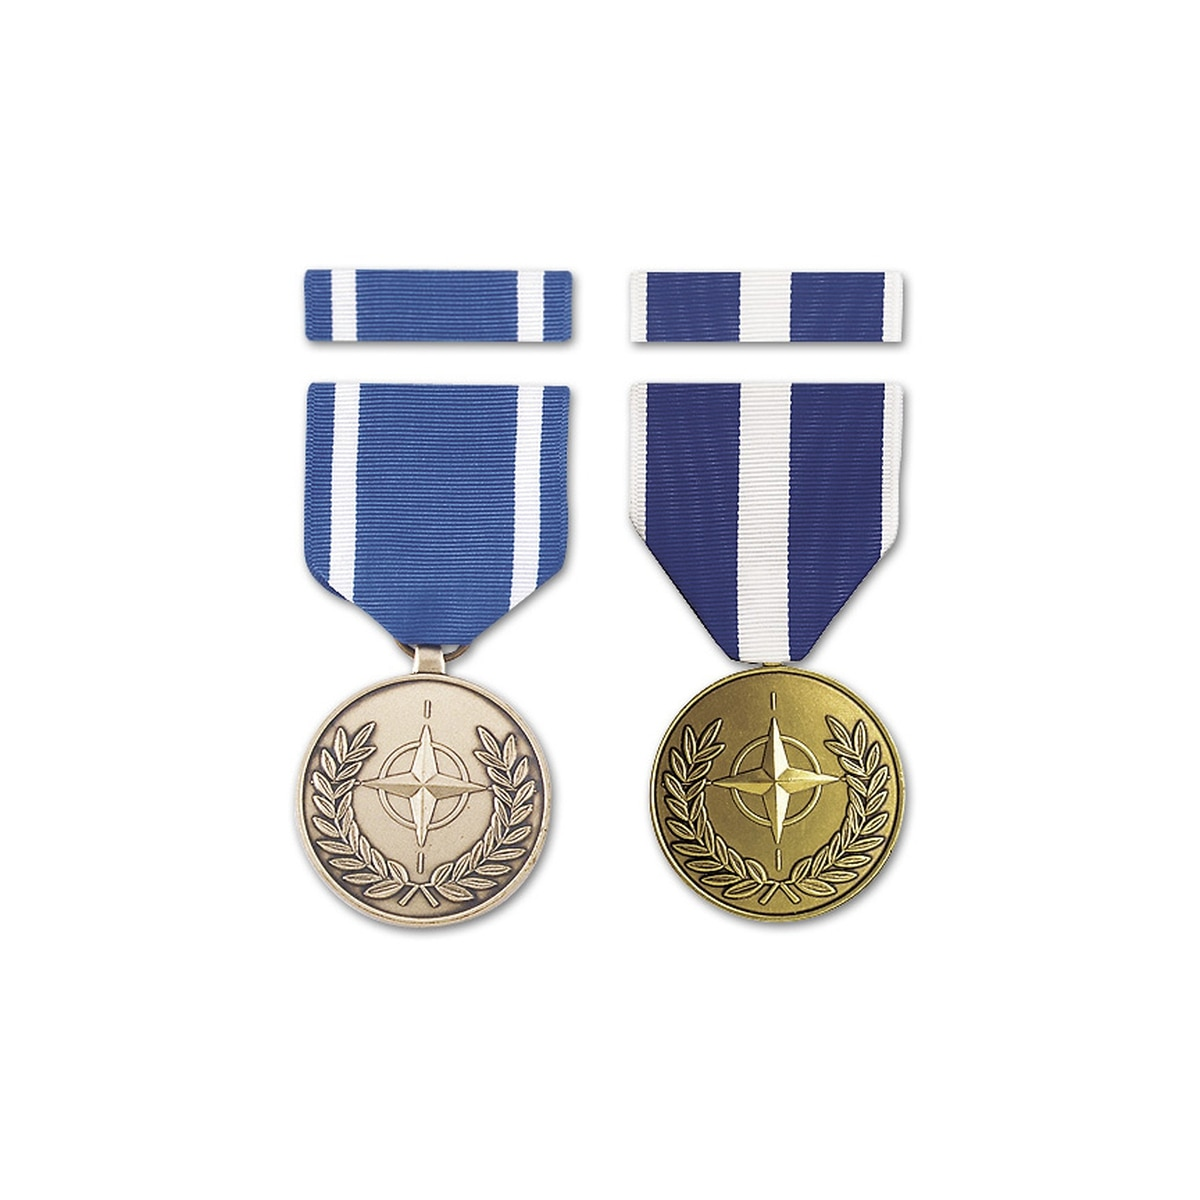 NATO Medal authorized for Operation Resolute Support